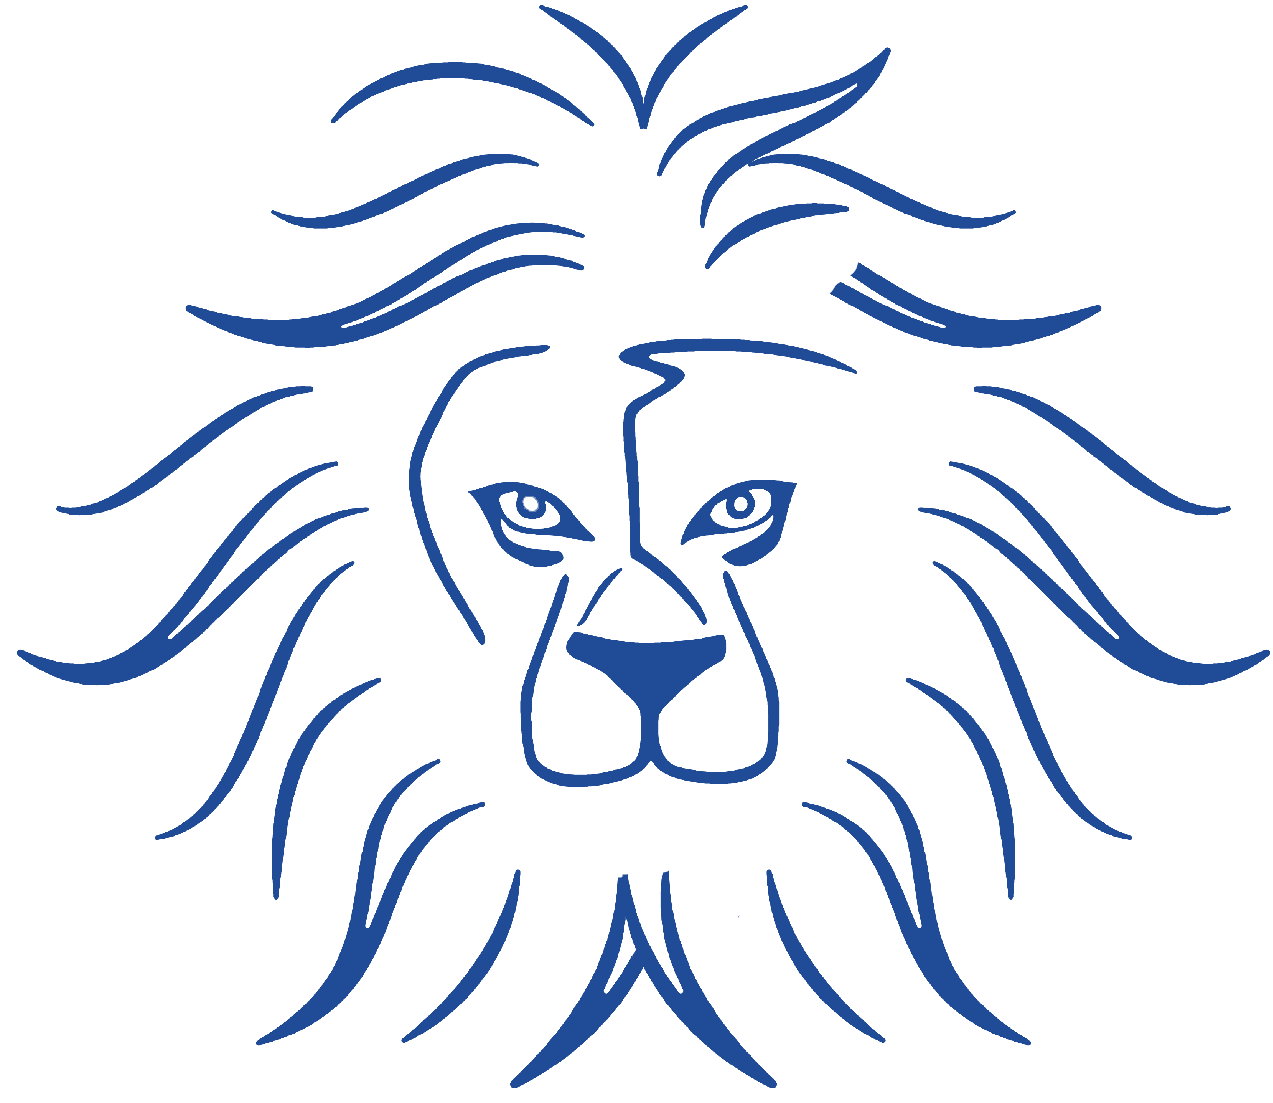 Lionsgate logo clipart vector library stock Lionsgate Academy | Lionsgate Academy is a Charter School ... vector library stock